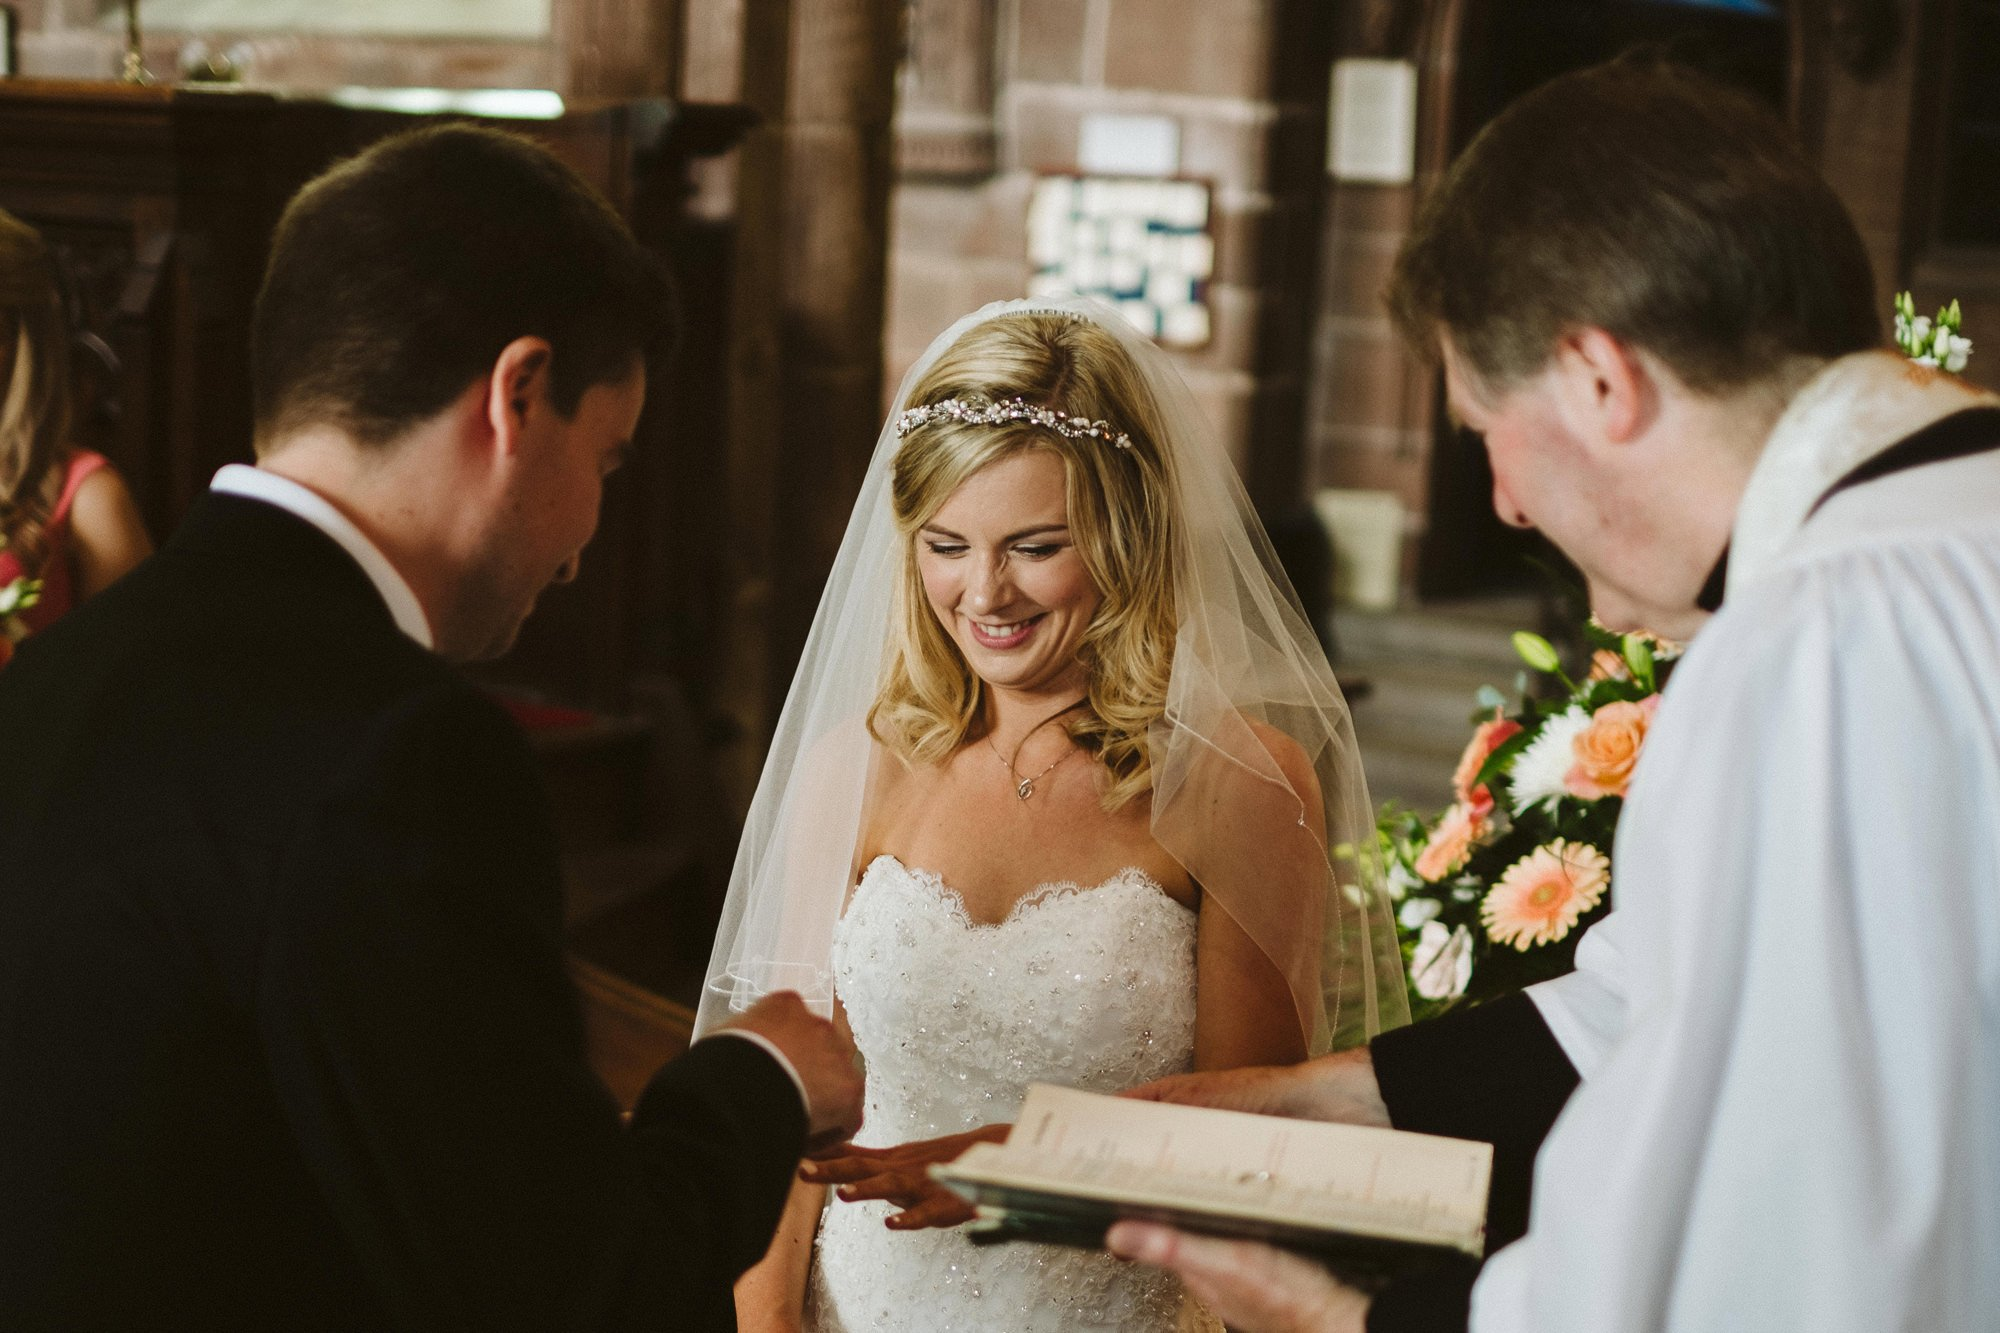 bride great budworth church wedding ceremony